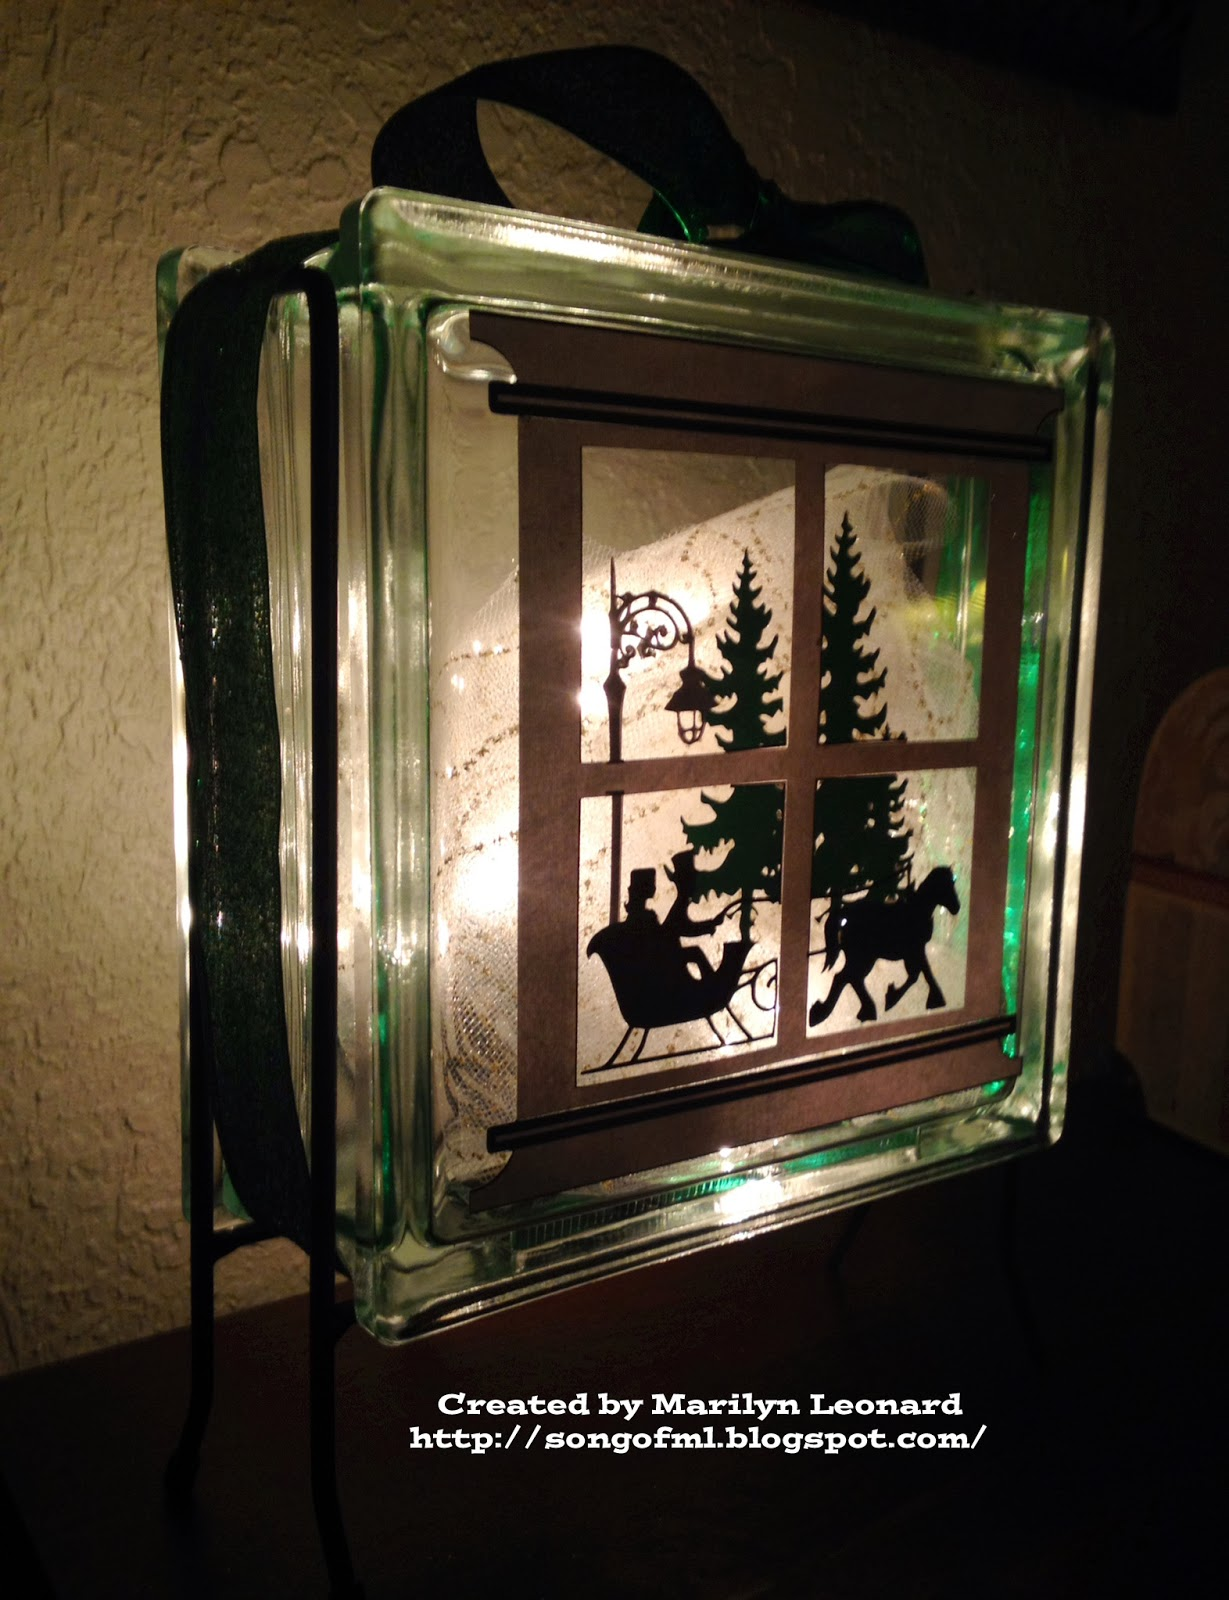 String Lights For Glass Blocks : ~ Marilyn s Crafts ~: Glass Block - Sleigh Ride